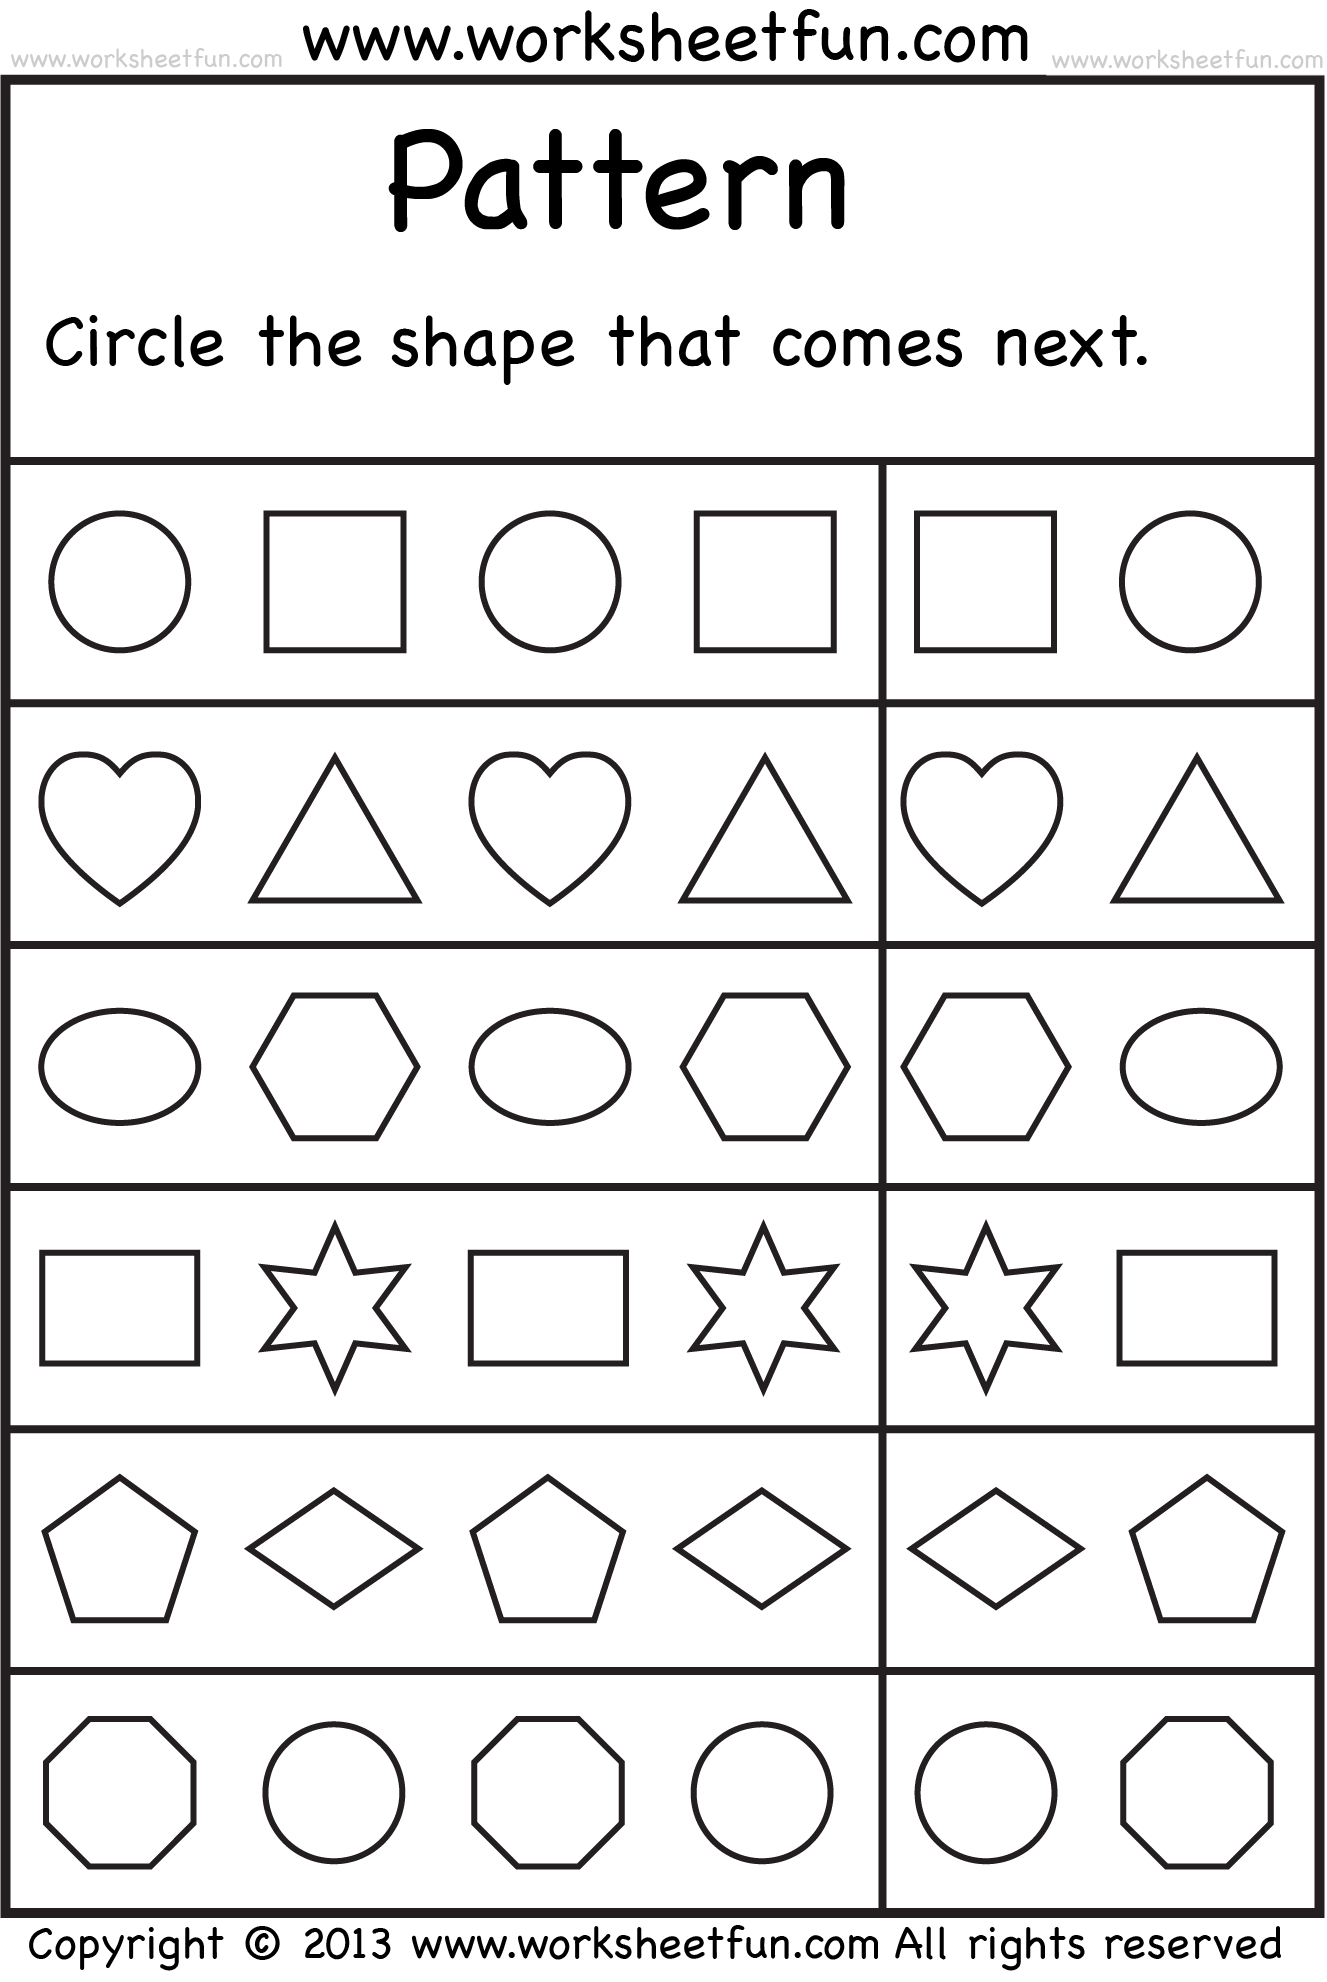 Proatmealus  Marvelous  Images About School Worksheets On Pinterest  Number Words  With Remarkable  Images About School Worksheets On Pinterest  Number Words Alphabet Worksheets And Free Printable Kindergarten Worksheets With Amazing Multiplication Worksheets  Digit By  Digit Also Free Math Worksheets For Th Graders In Addition Copy Sentences Worksheets And Compound Noun Worksheet As Well As Twelve Step Worksheets Additionally Character Setting And Plot Worksheets From Pinterestcom With Proatmealus  Remarkable  Images About School Worksheets On Pinterest  Number Words  With Amazing  Images About School Worksheets On Pinterest  Number Words Alphabet Worksheets And Free Printable Kindergarten Worksheets And Marvelous Multiplication Worksheets  Digit By  Digit Also Free Math Worksheets For Th Graders In Addition Copy Sentences Worksheets From Pinterestcom